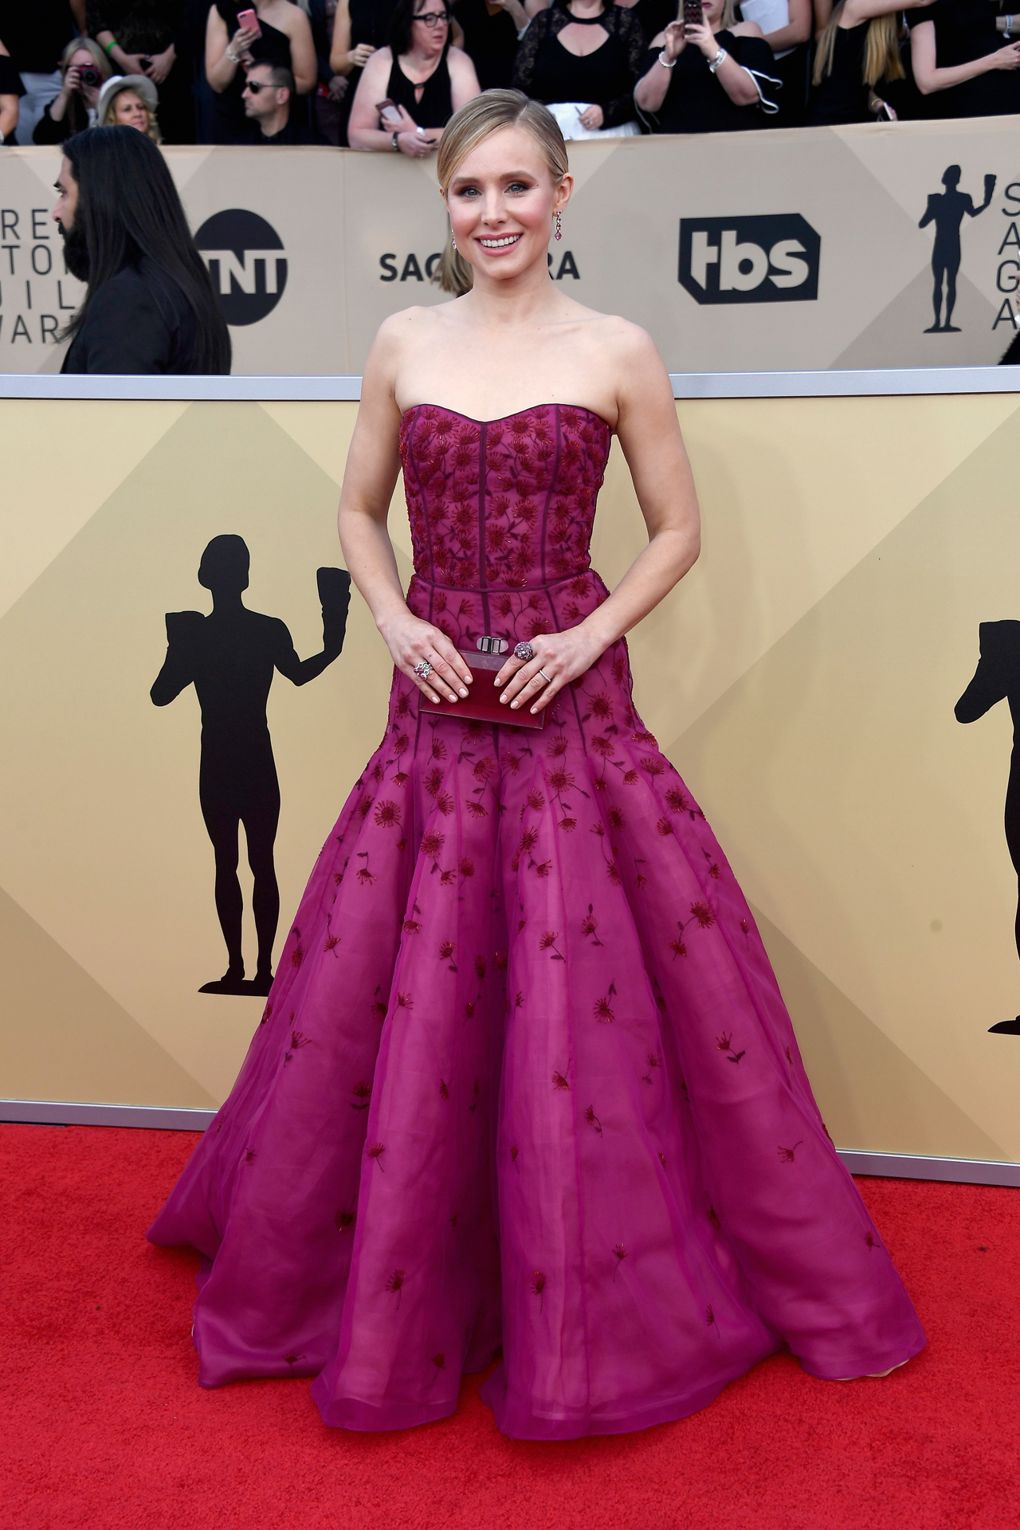 pink flower stitching dress kristen bell j.mendel SAG Awards 2018